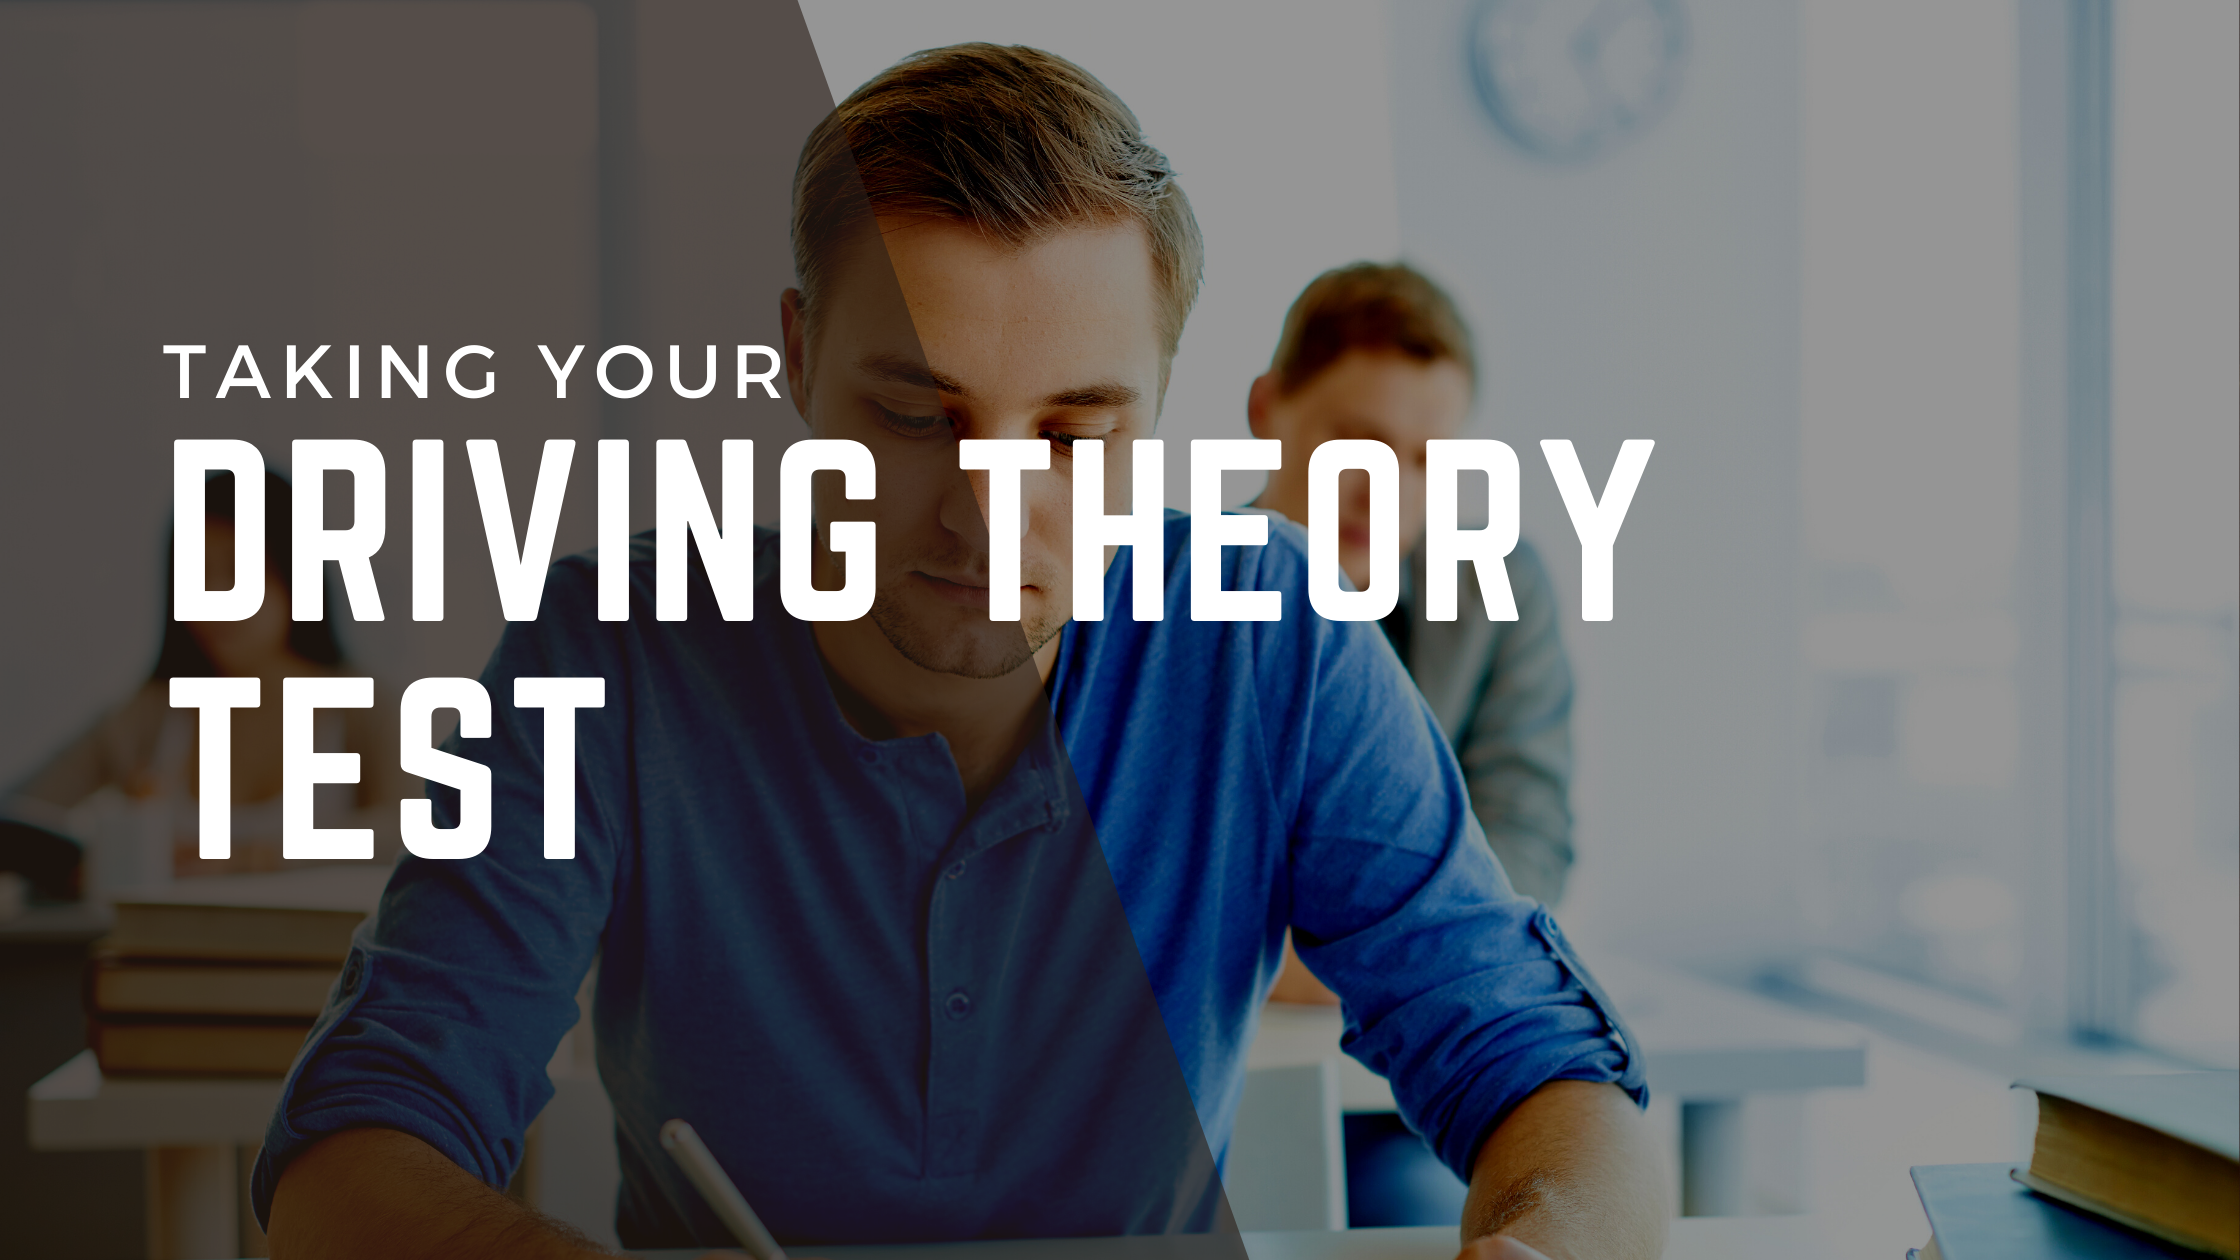 What You Need To Know Before Taking Your Driving Theory Test